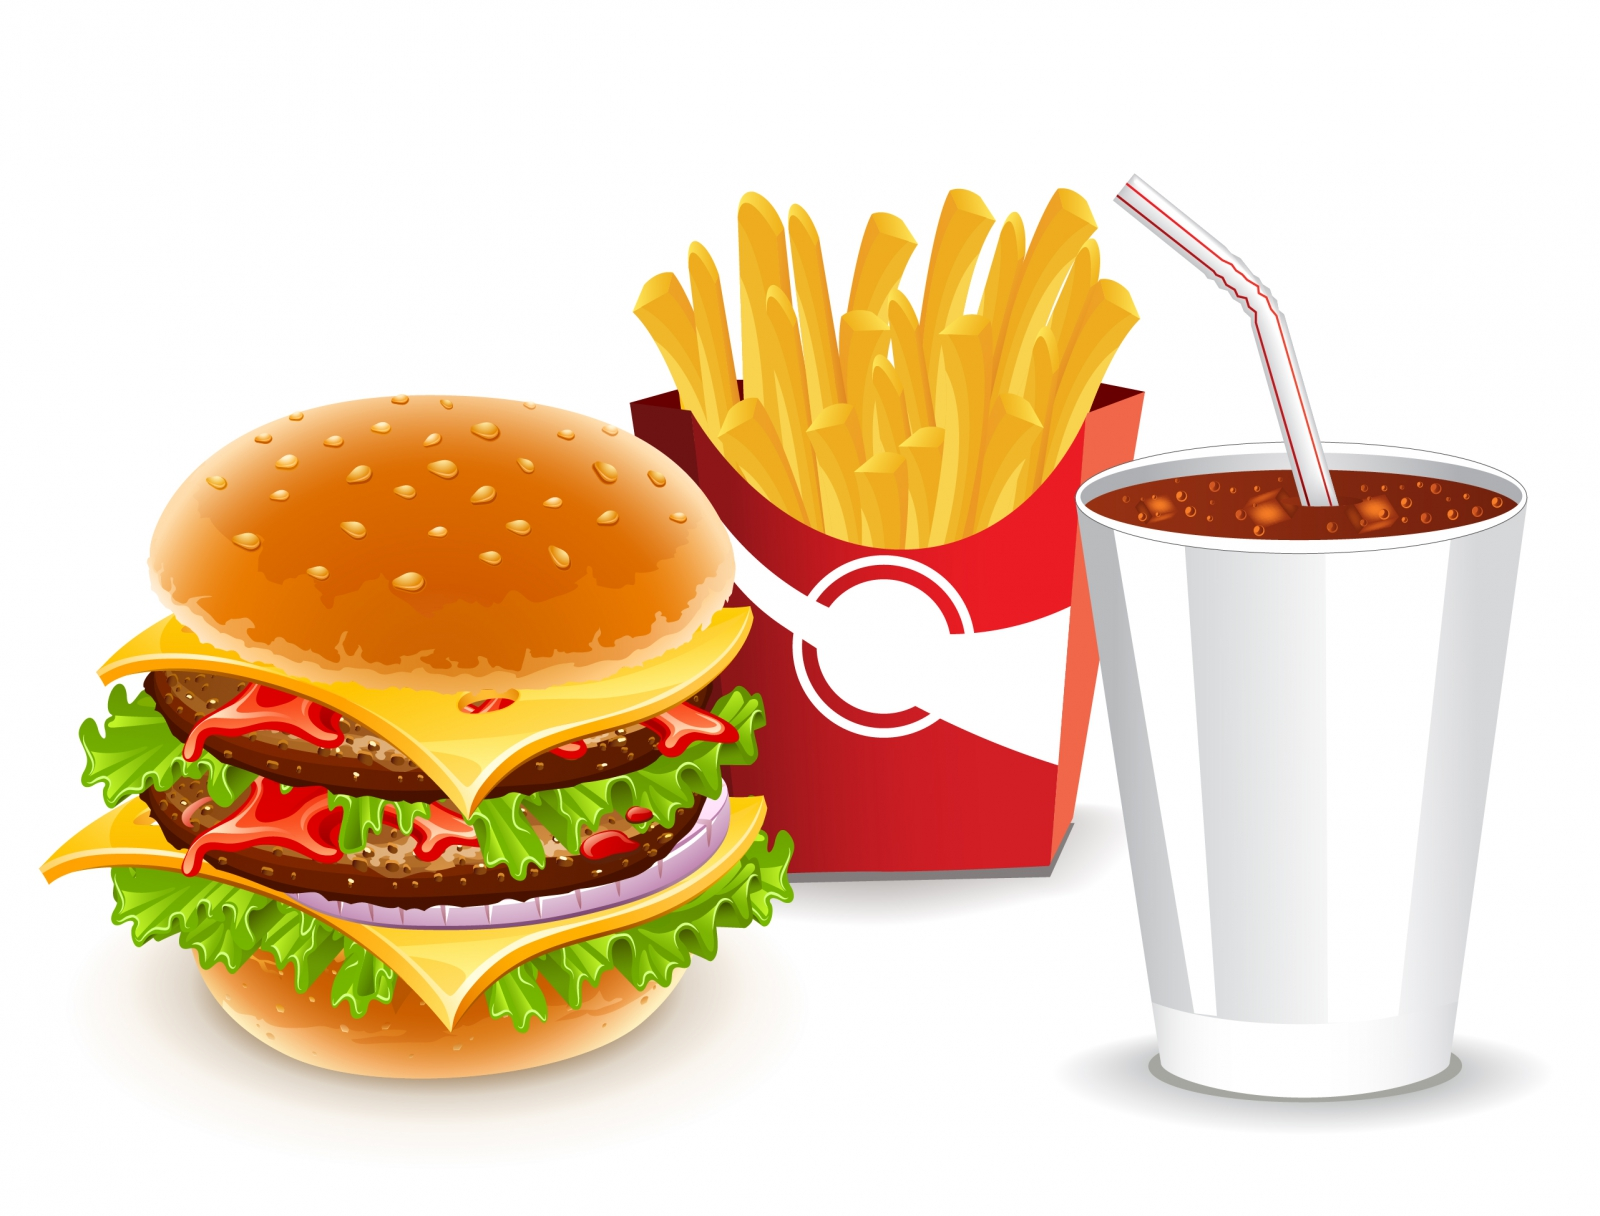 20 Free Cooking Vectors Images Junk Food Clip Art Free